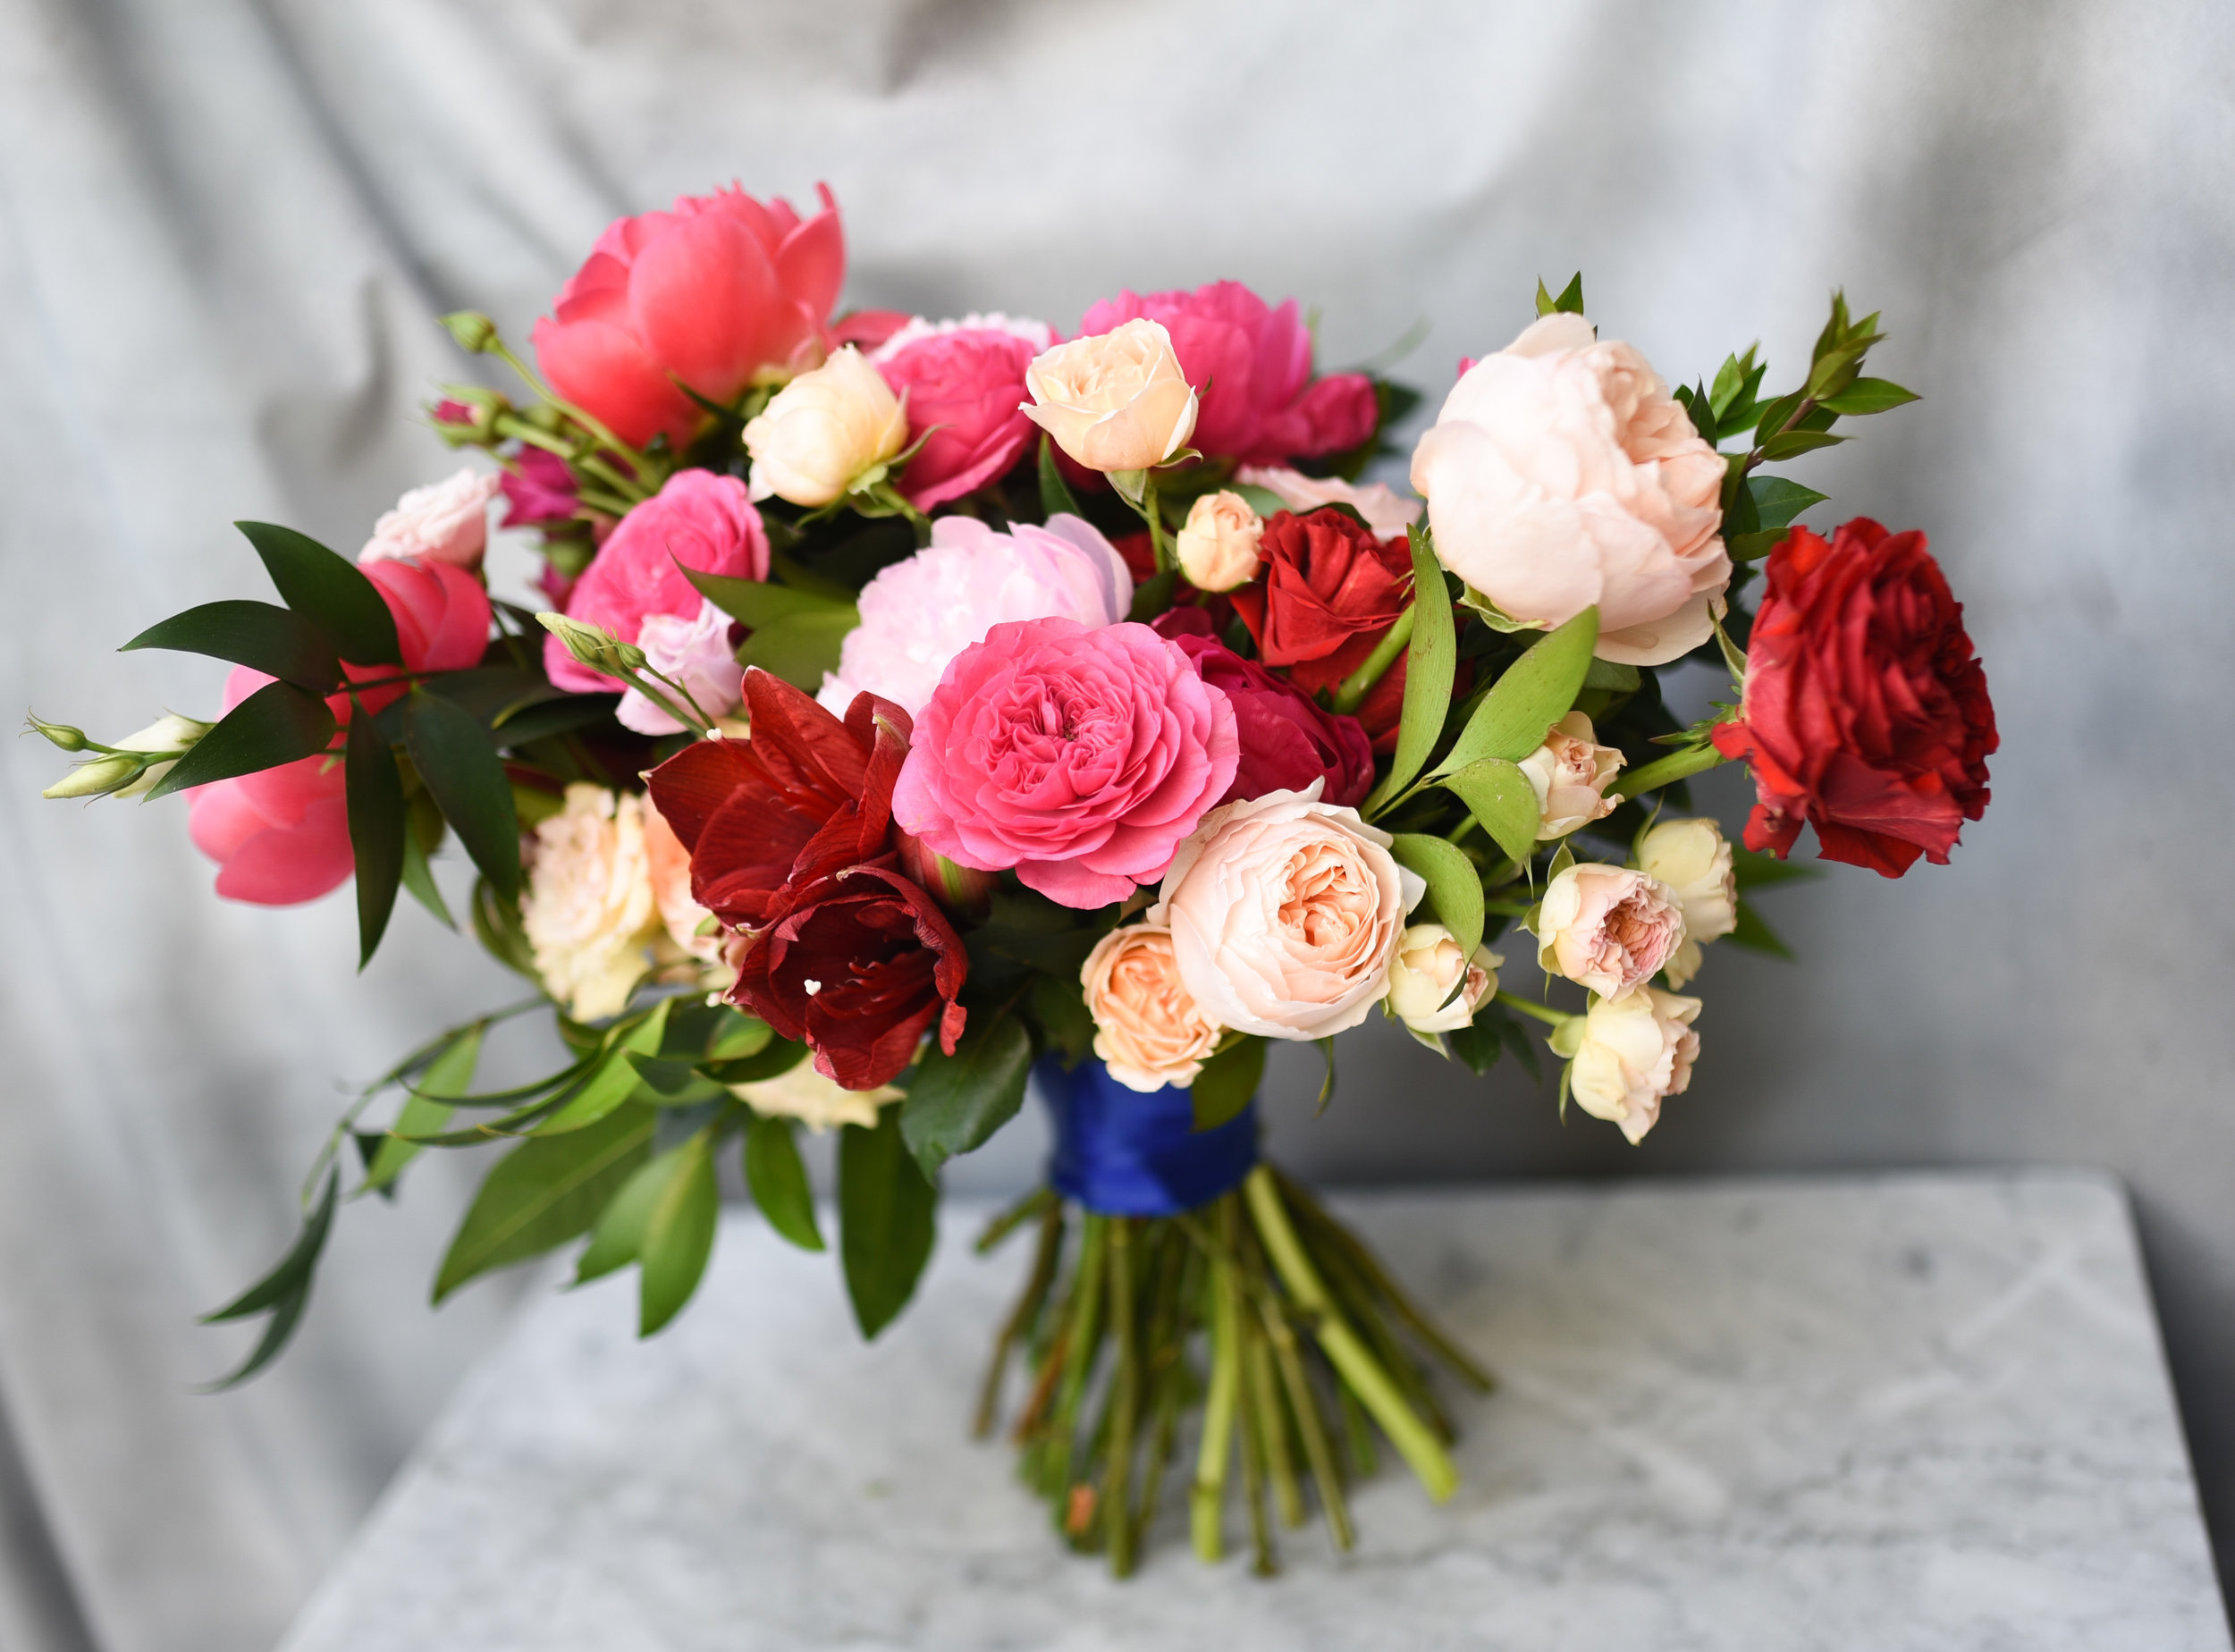 A bridal bouquet with endless high-end flowers